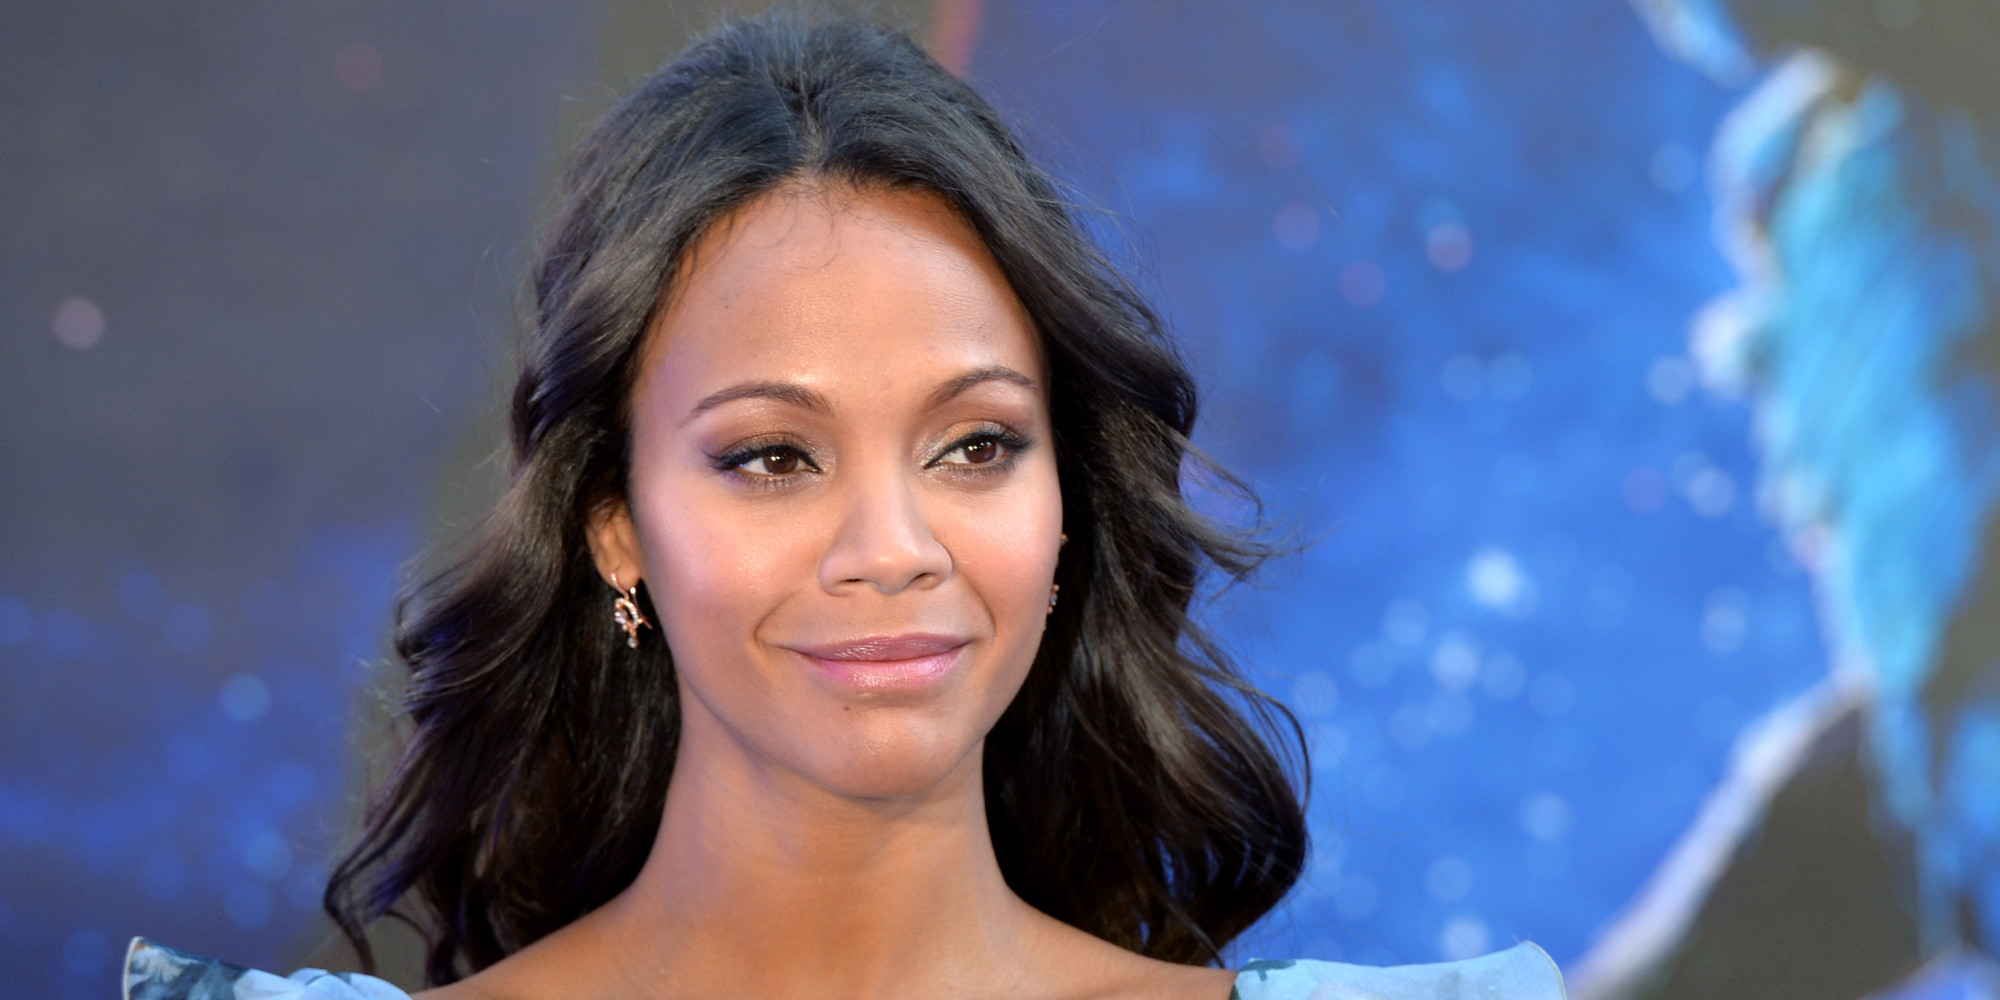 Zoe Saldana Defends Britney Spears After AutoTune Controversy